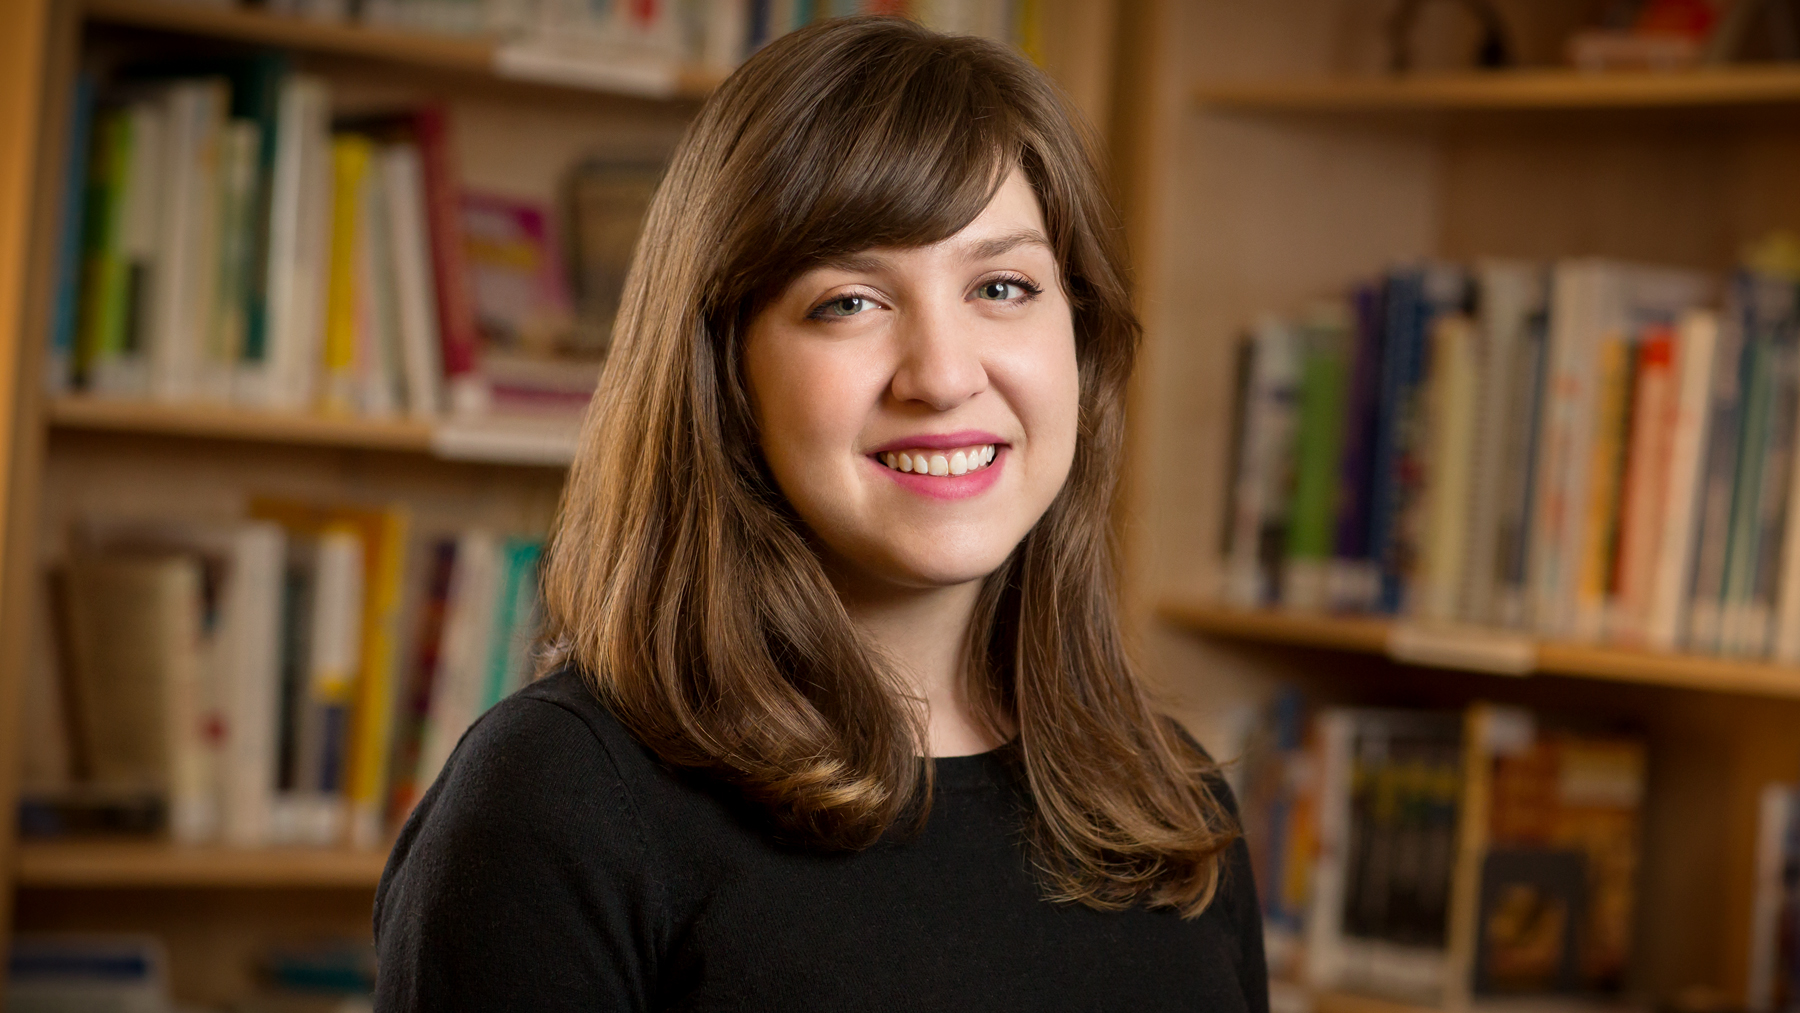 of Illinois alumna Jaclyn Saltzman, who conducted the research while earning a doctorate in family studies.